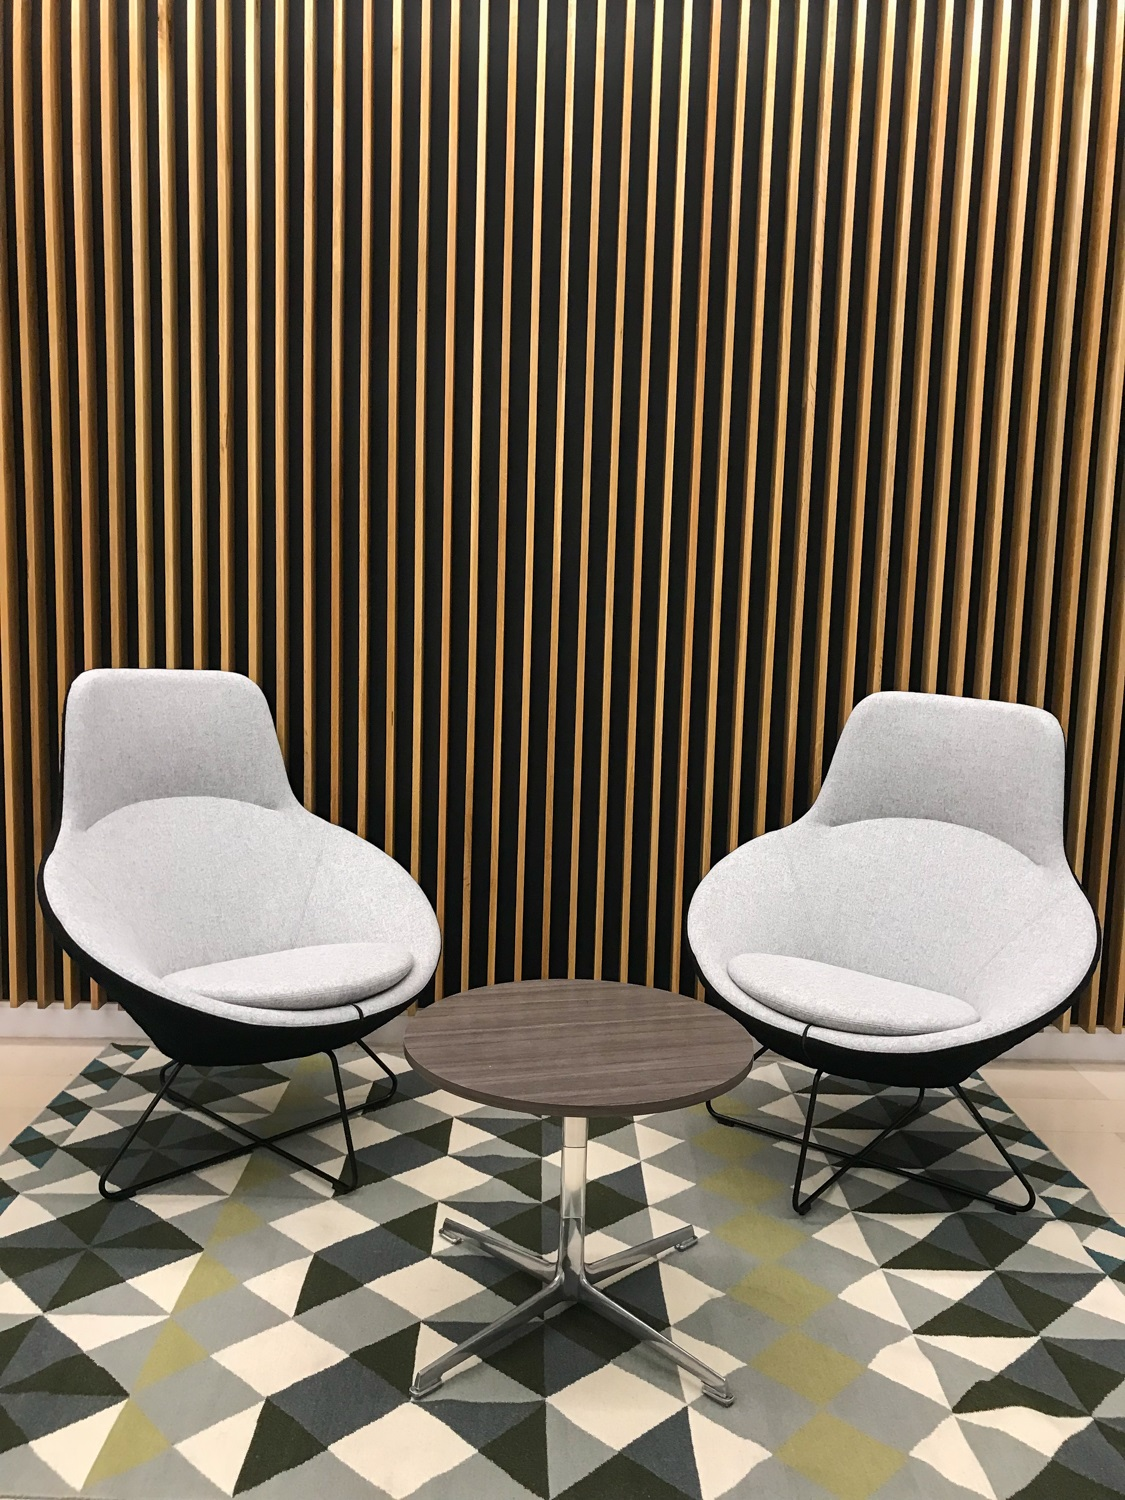 two modern chairs around a circular coffee table